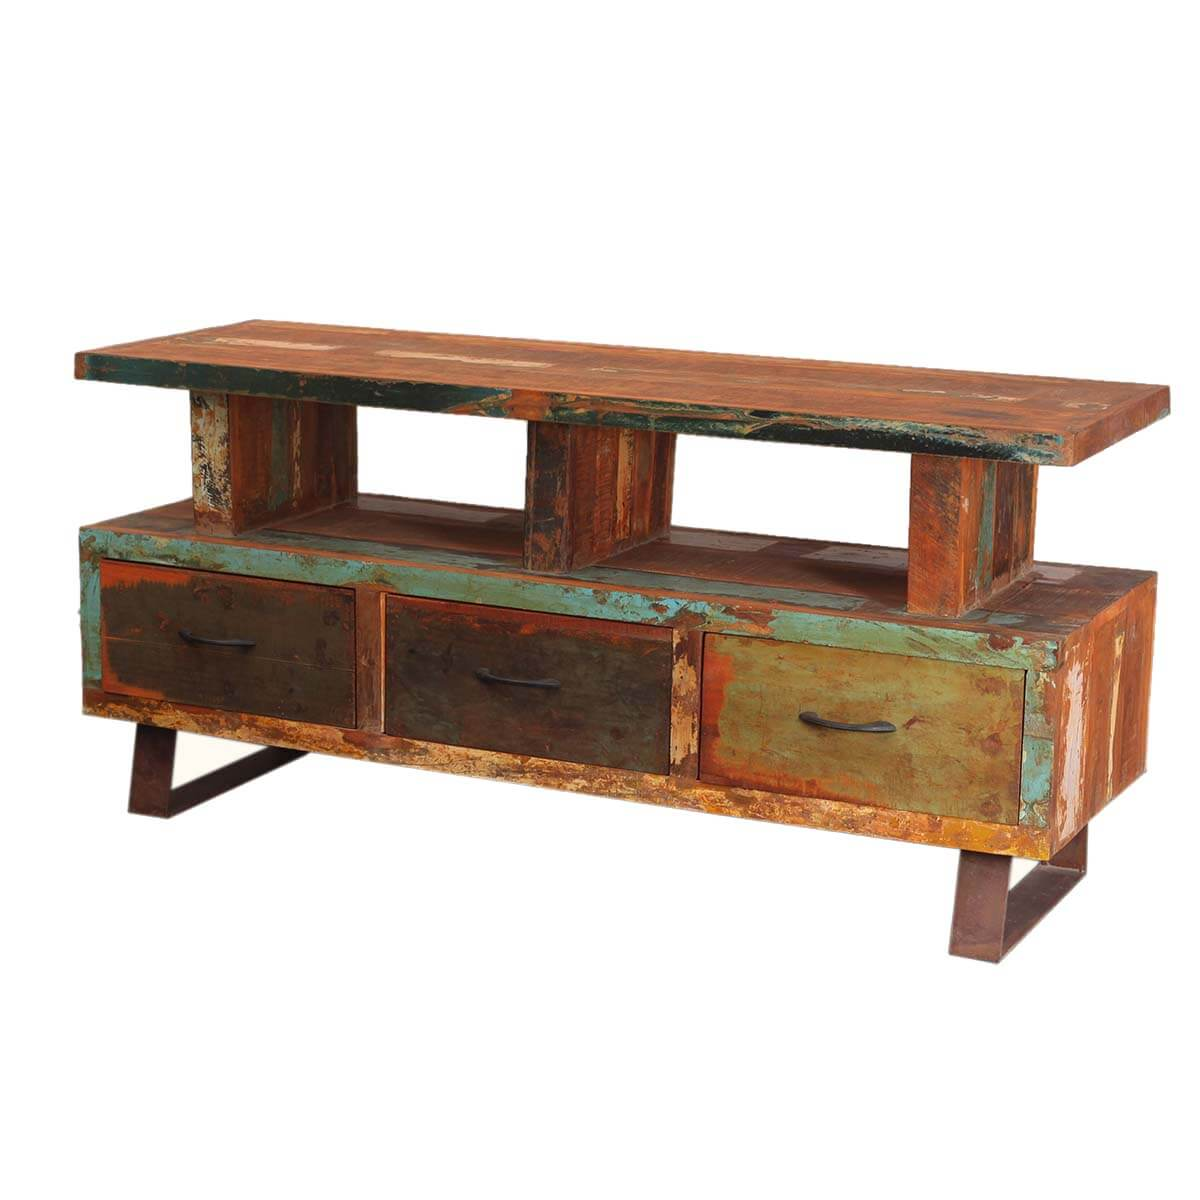 New York Reclaimed Wood Console Table Industrial Console Tables moreover 22382 Built In Shower Seat Bathroom Contemporary With Black Frosted Glass Glass additionally Weve Got The Blues 10 Pieces Of Blue Bedroom Furniture together with Zelda Mirror Bed Frame further Red Tv Stand Wooden 60 Long Tv Console. on distressed console table